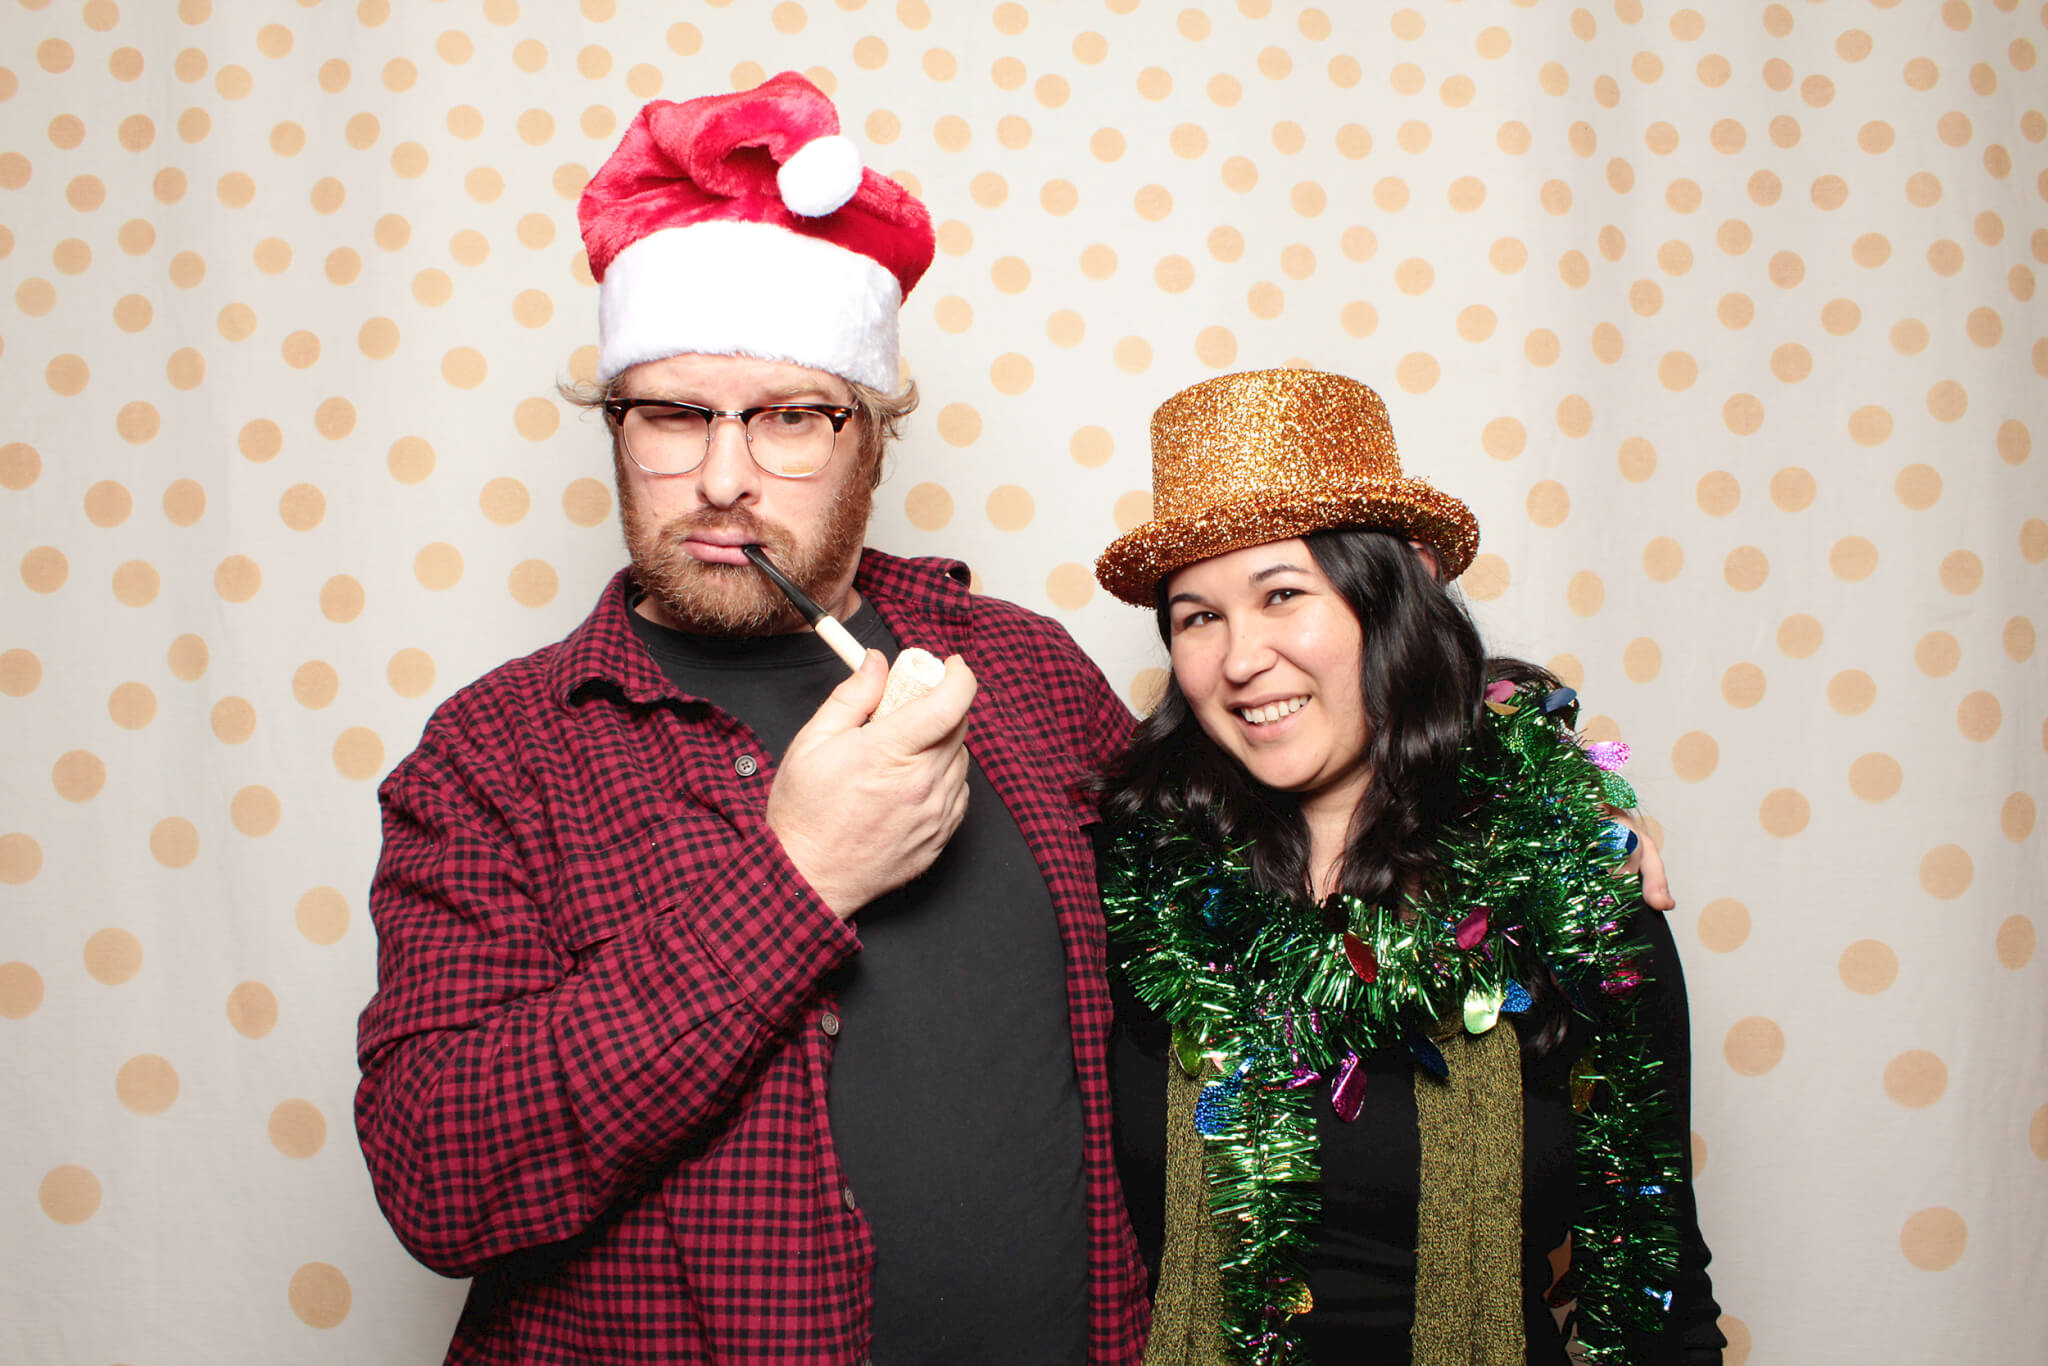 AUSTIN PHOTO BOOTH FOR W2O Group 2013 Austin Holiday Party